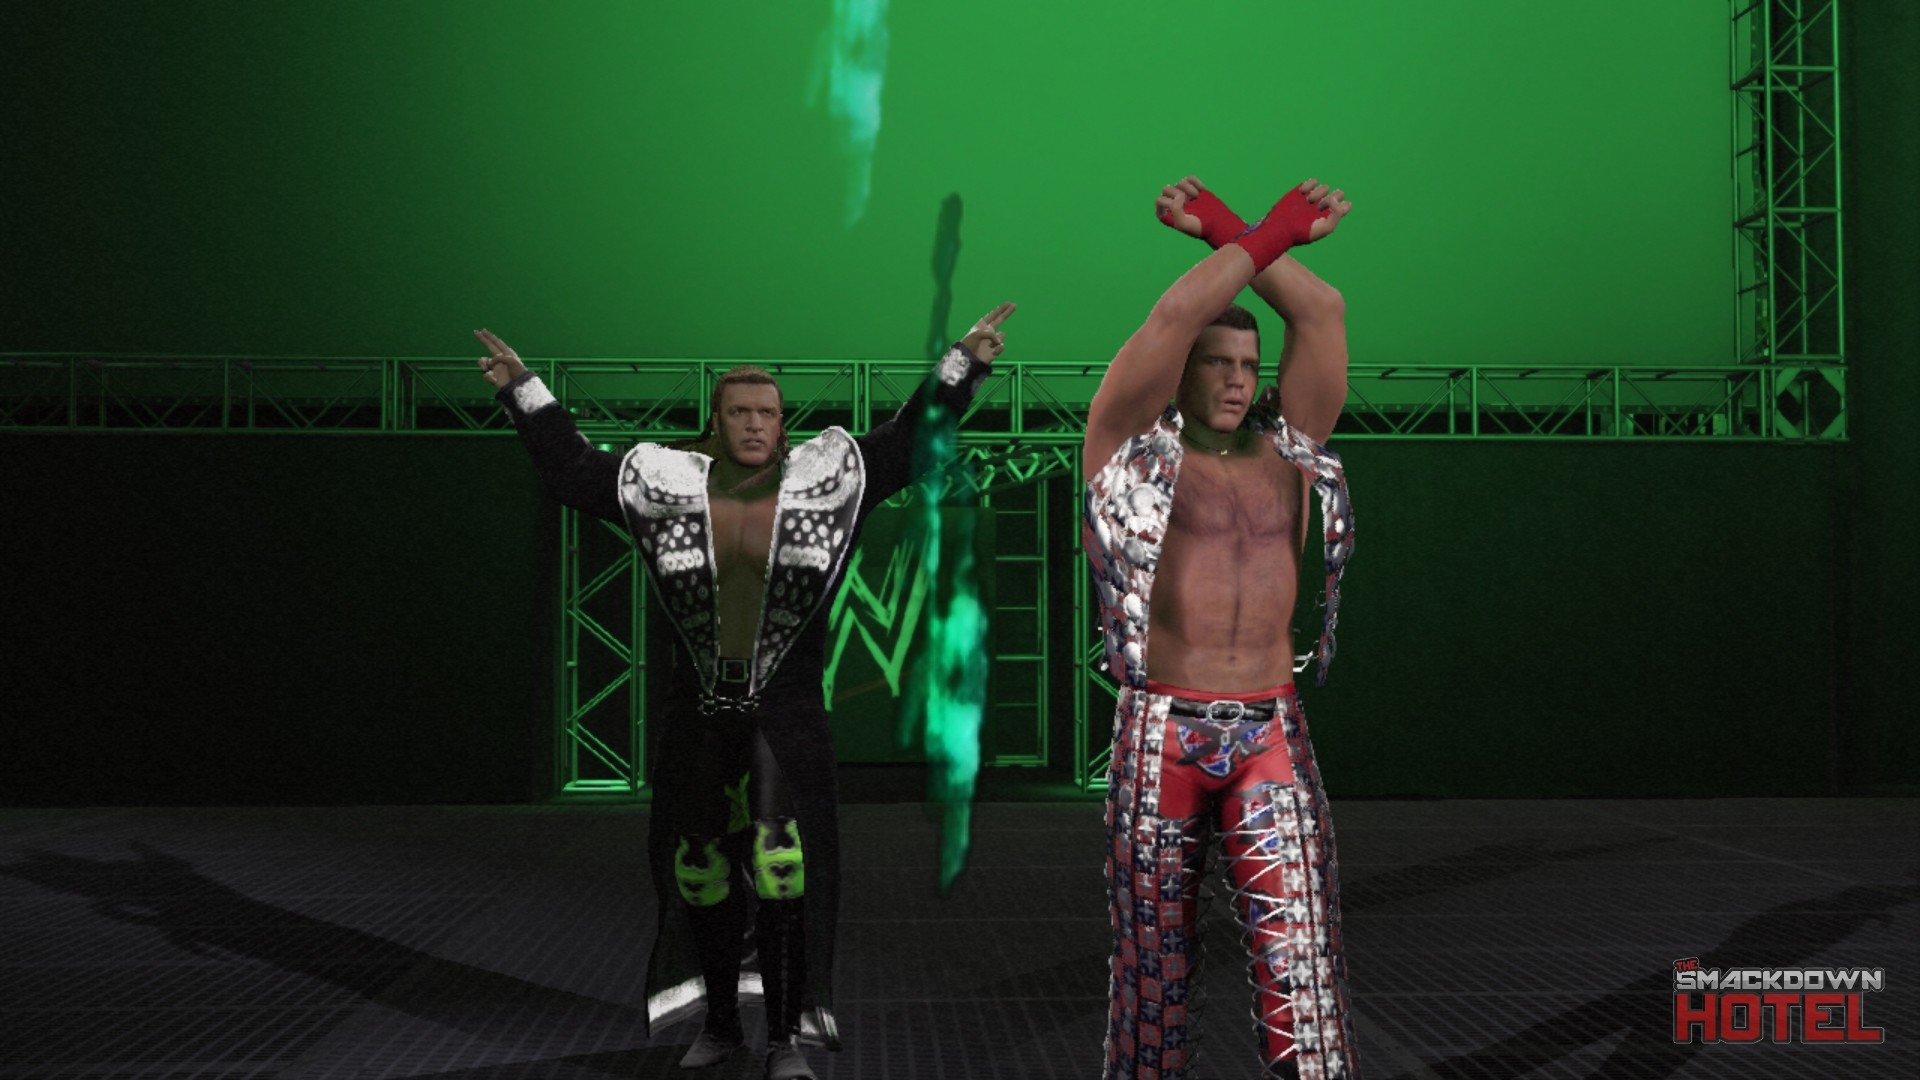 Wwe wallpapers dx 64 images - Dx images download ...